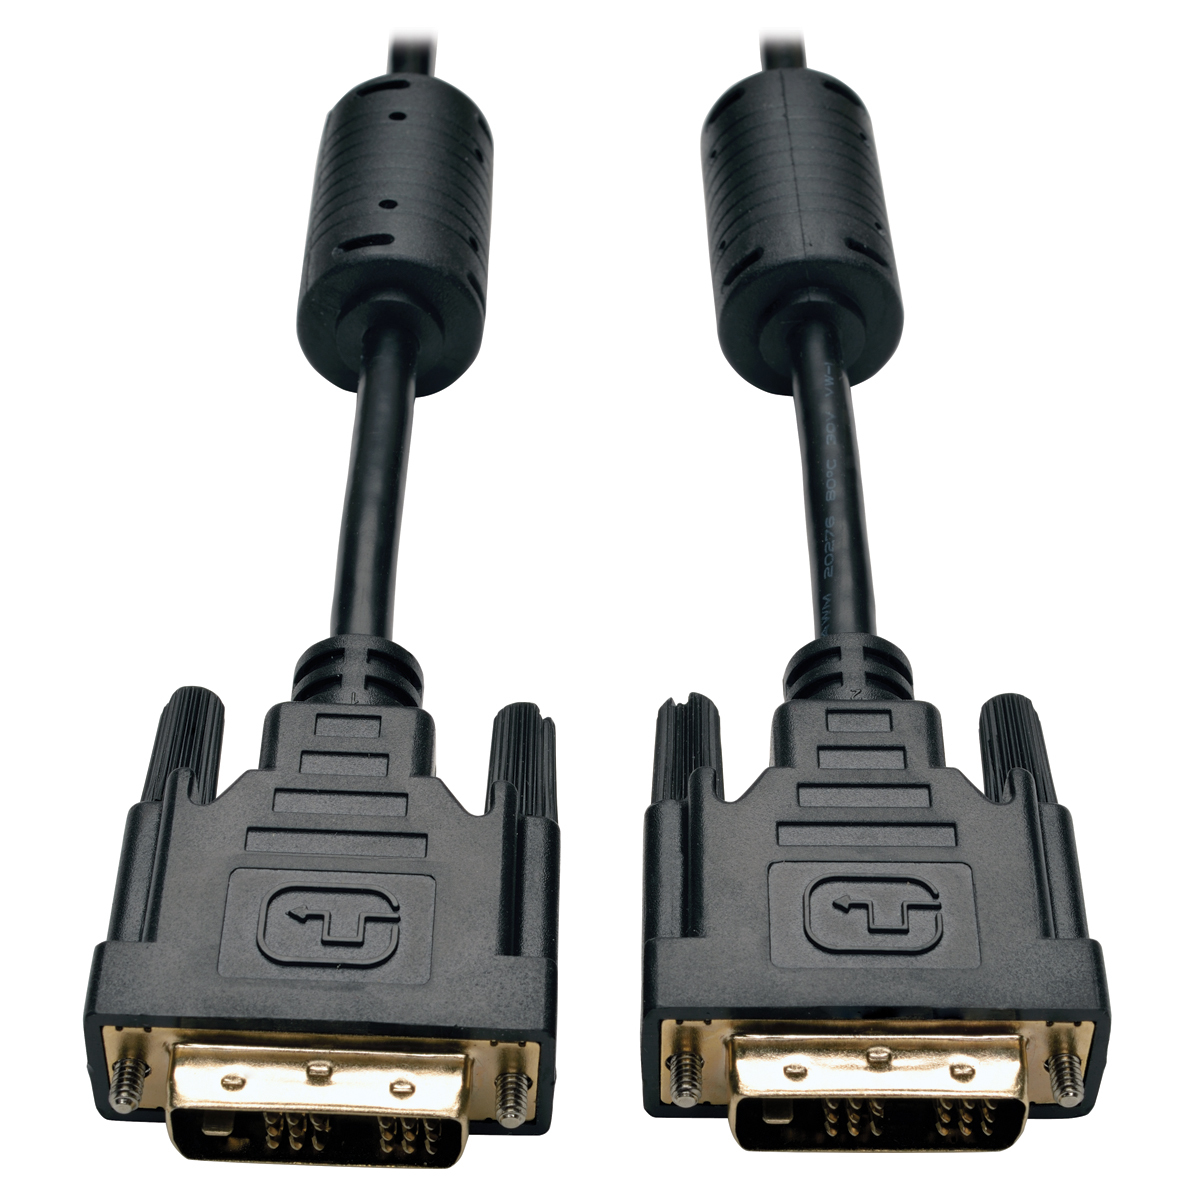 10ft DVI Single Link Digital TMDS Monitor Cable DVI-D M/M 10 feet - DVI cable - DVI-D (M) to DVI-D (M) - 10 ft - molded